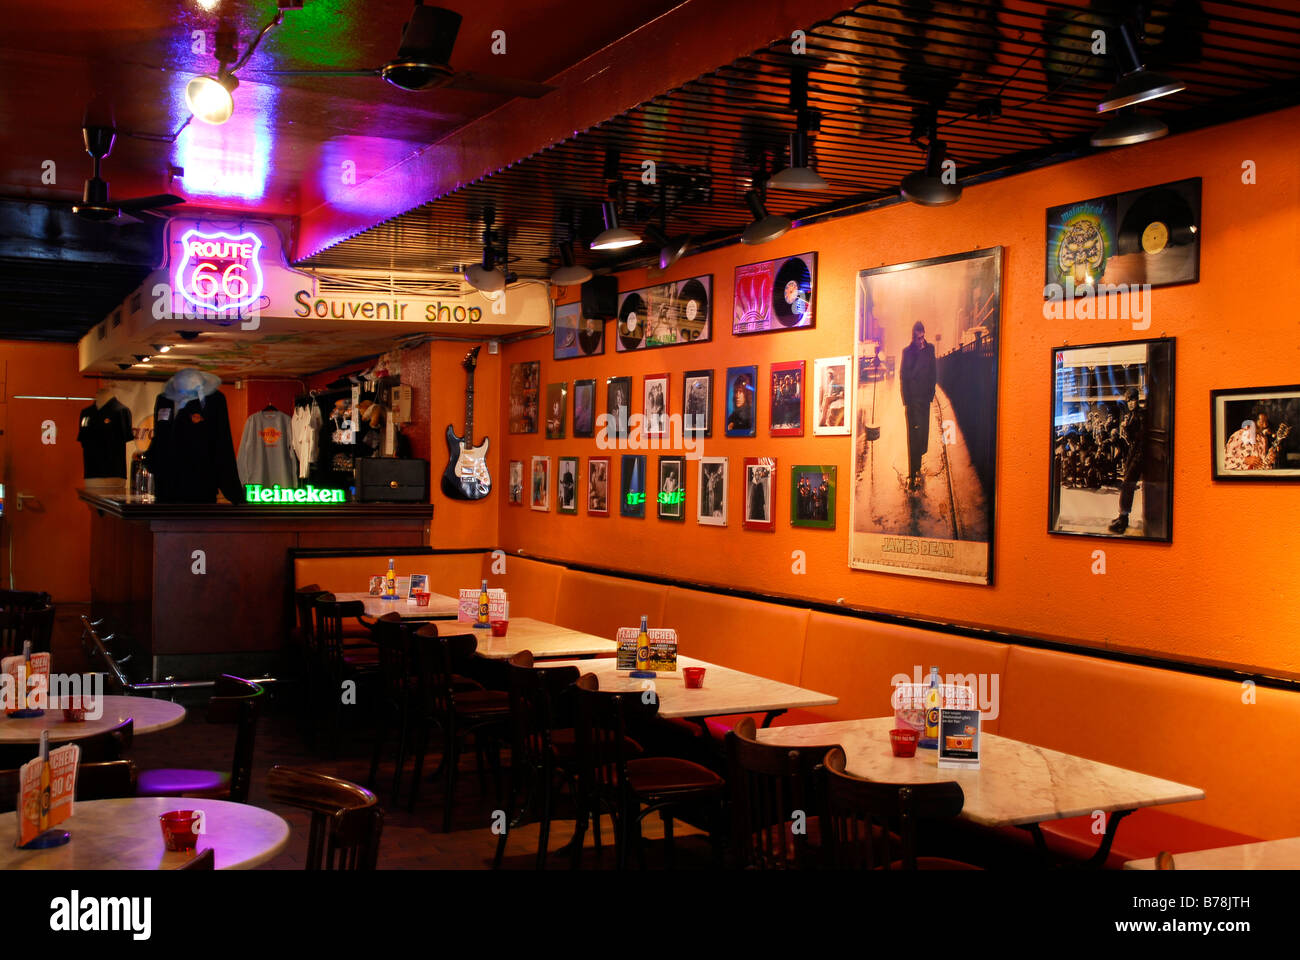 hard rock cafe interior decoration old city heidelberg neckar stock photo royalty free. Black Bedroom Furniture Sets. Home Design Ideas